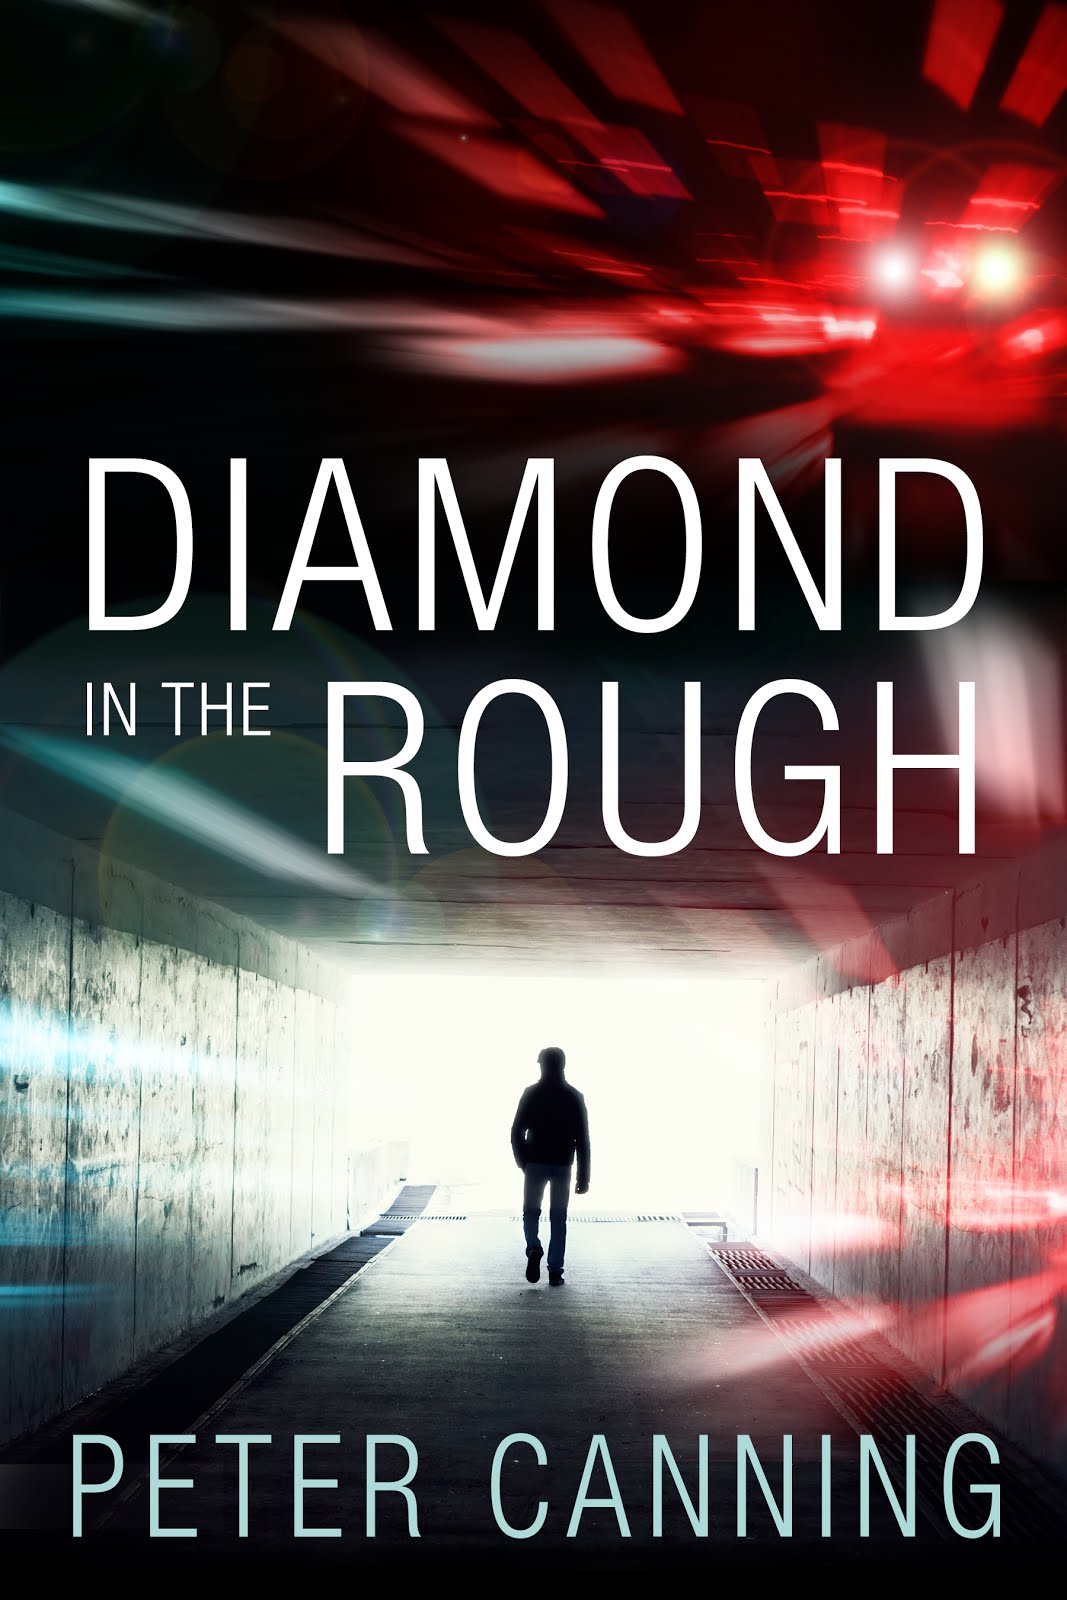 Diamond in the Rough (2016)